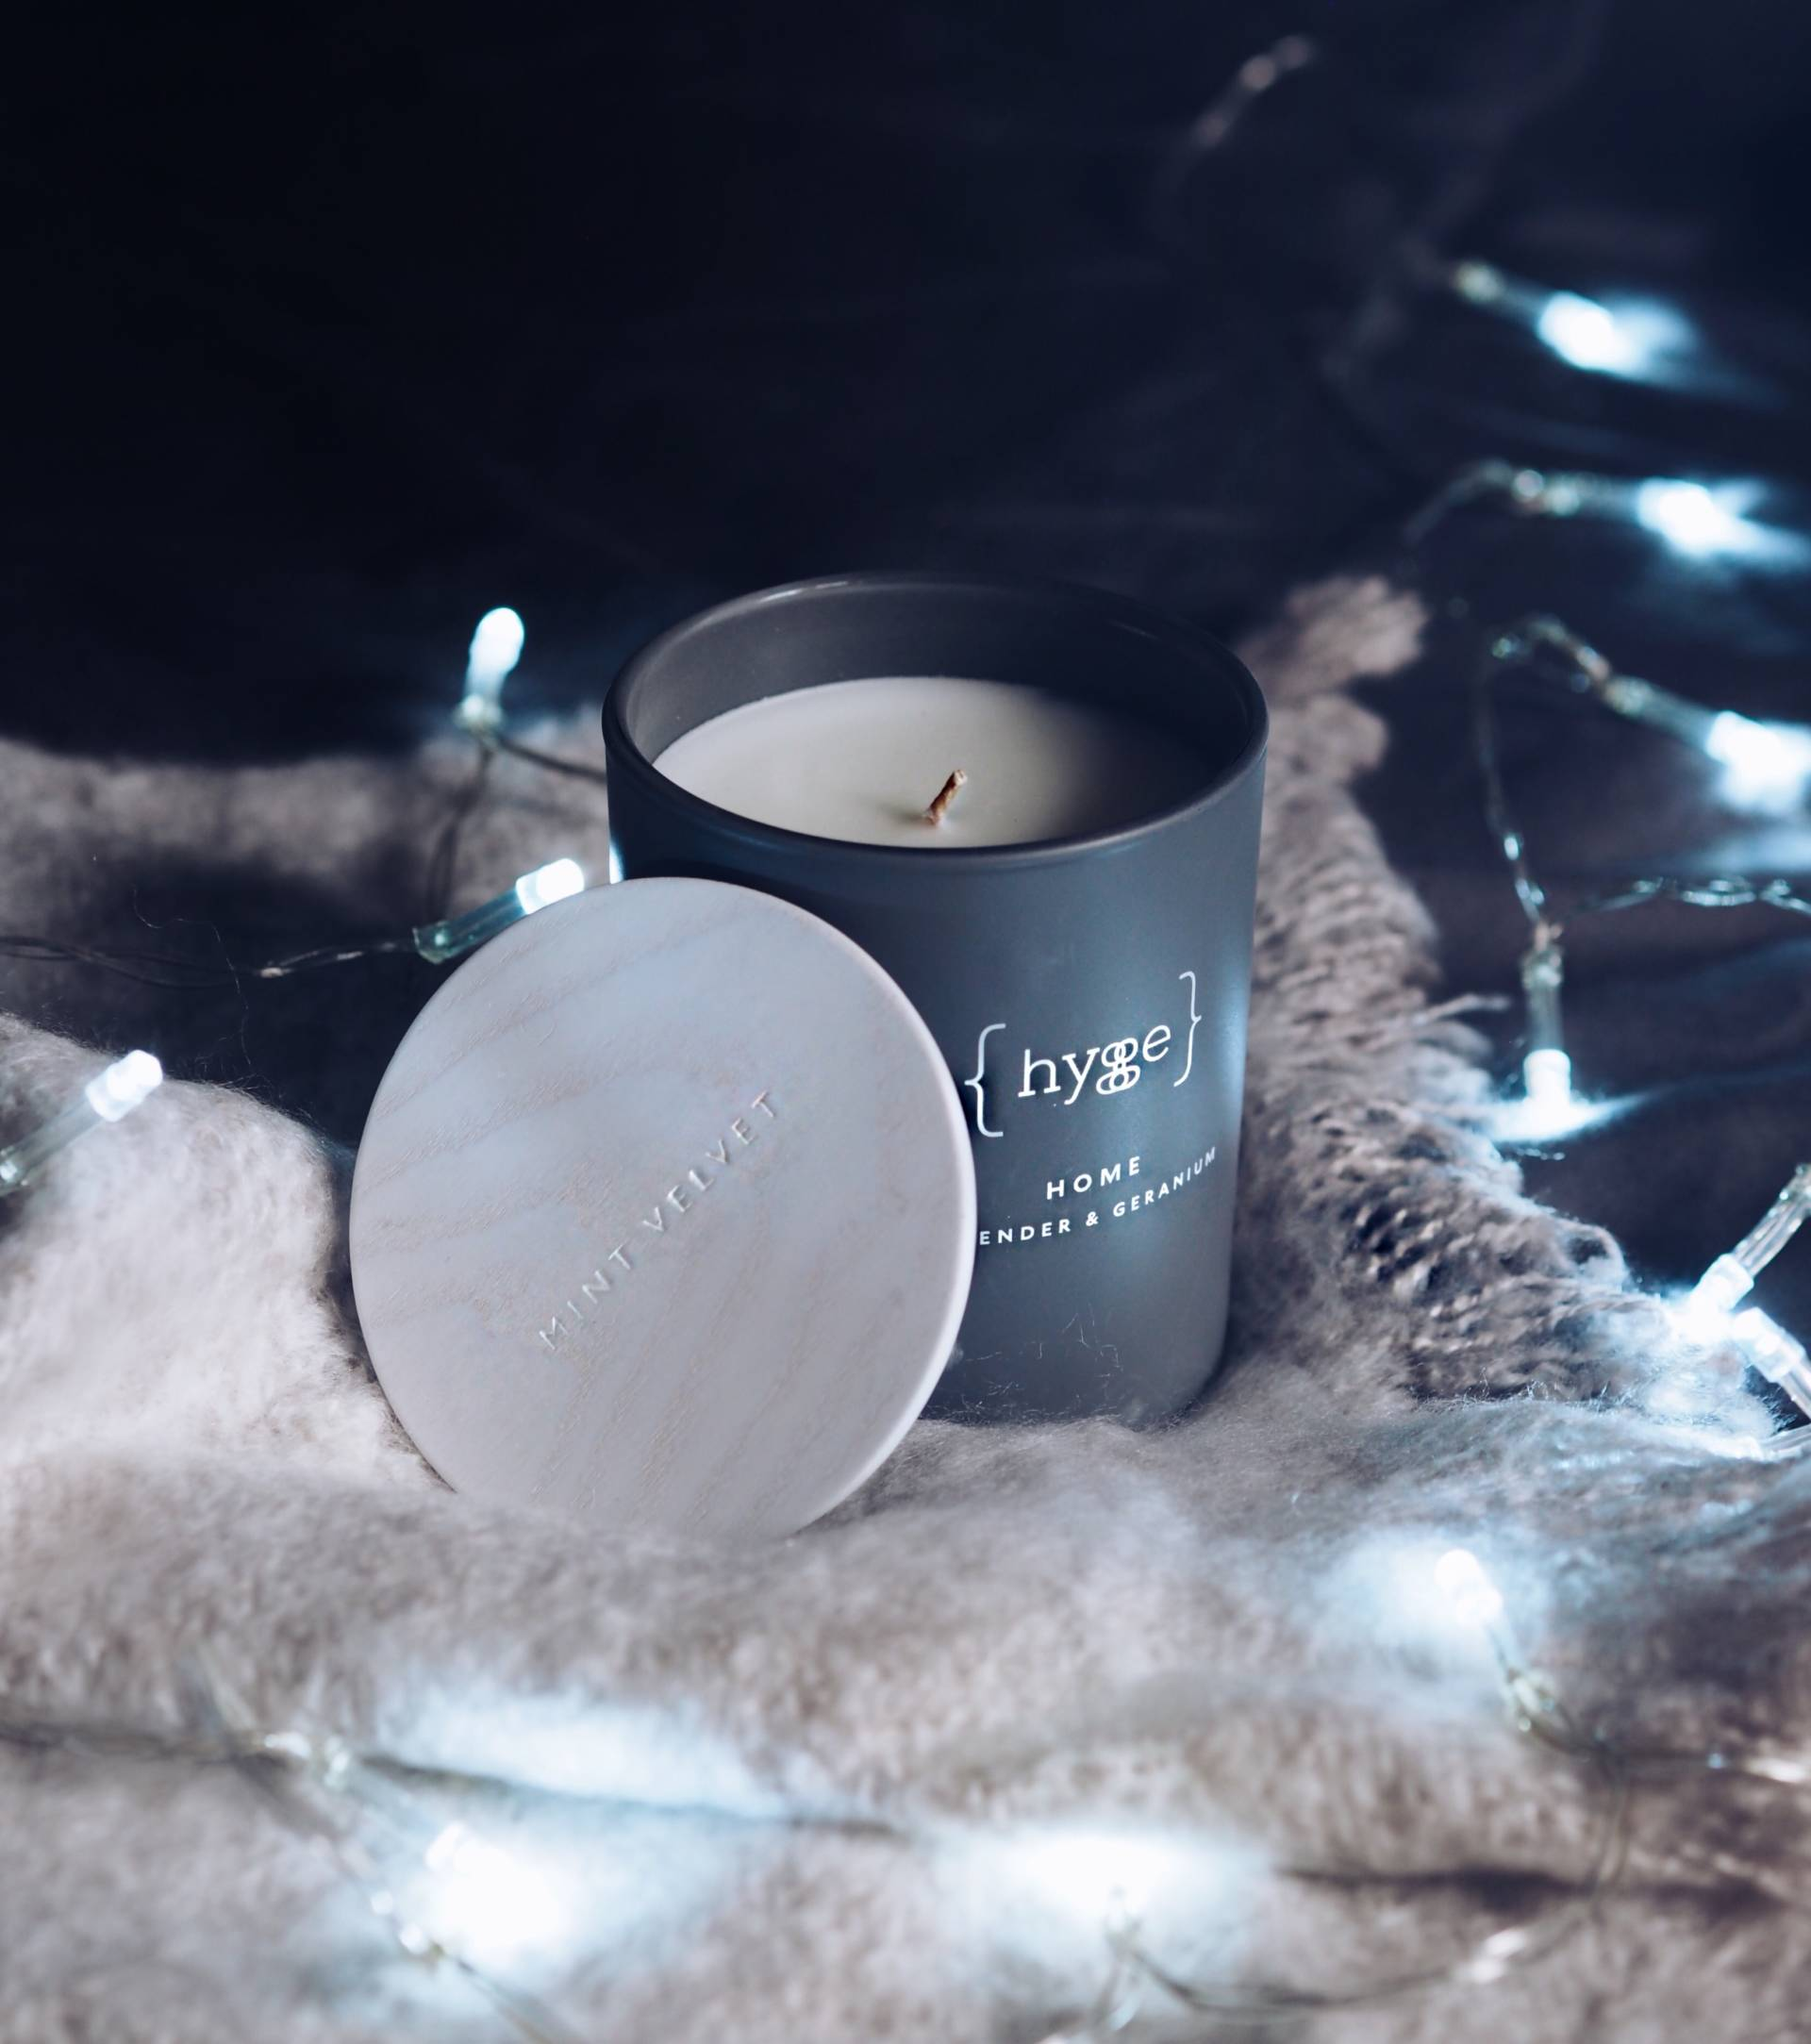 Christmas Gift Ideas for her - Hygge style